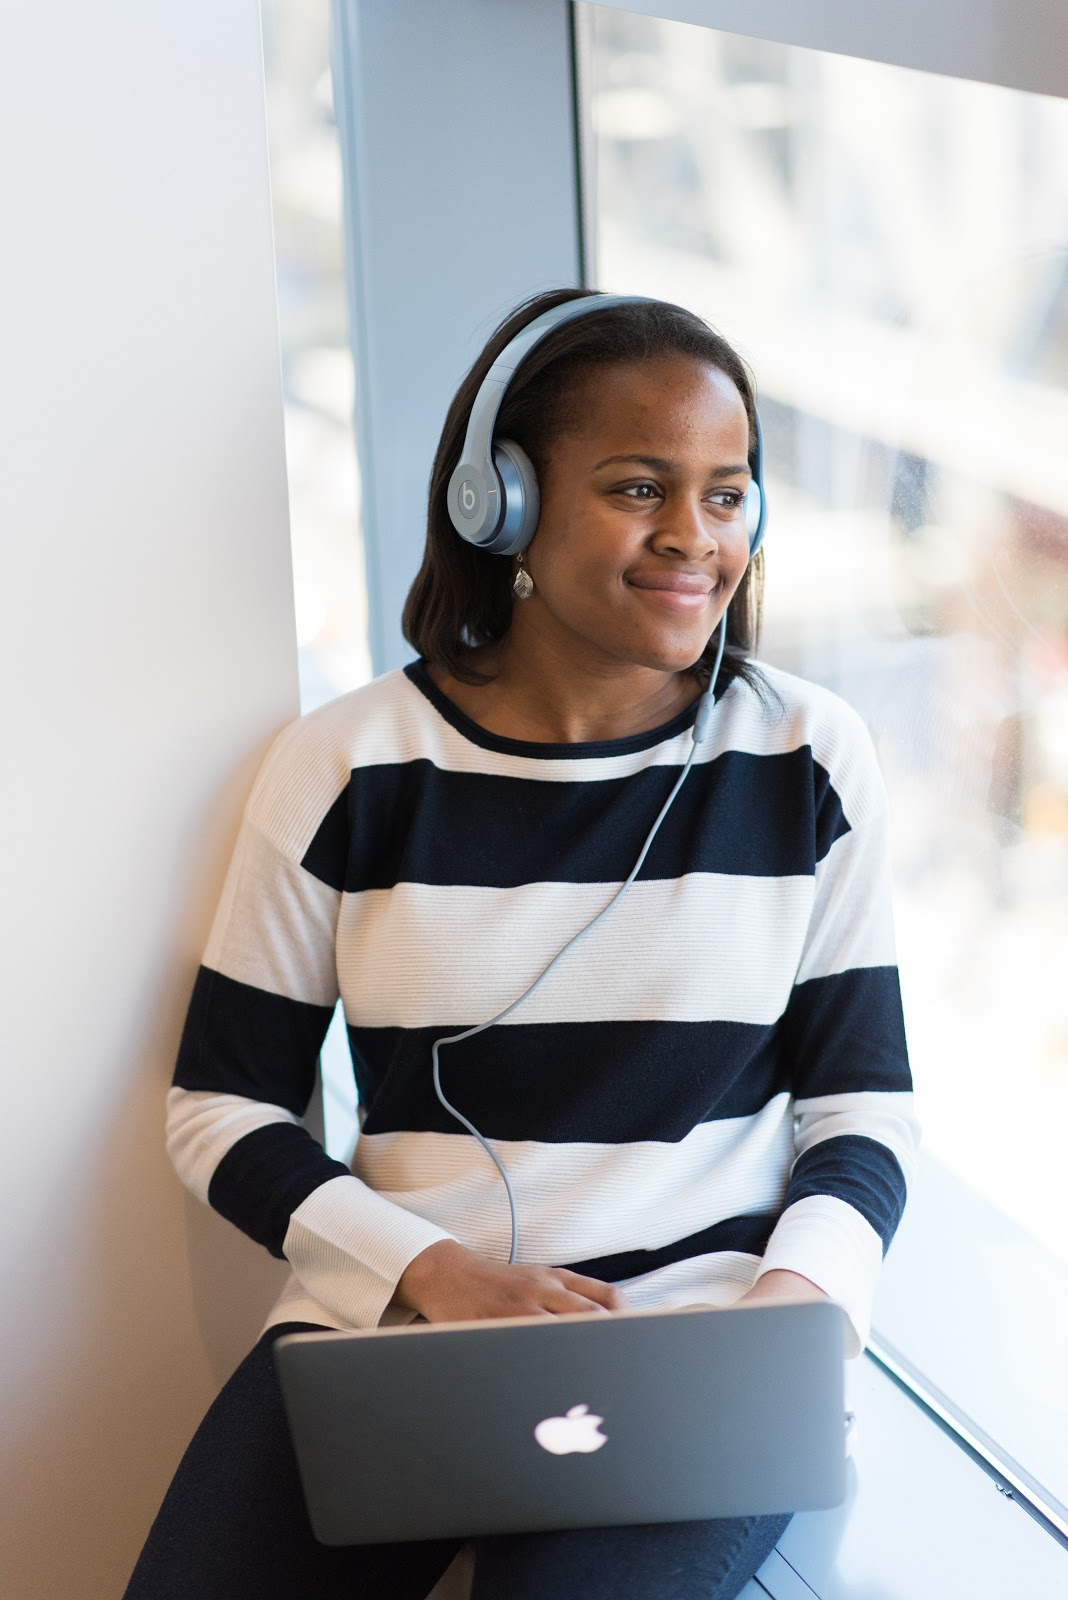 A young woman wearing large headphones listens to music on her laptop while happily gazing out of the window.